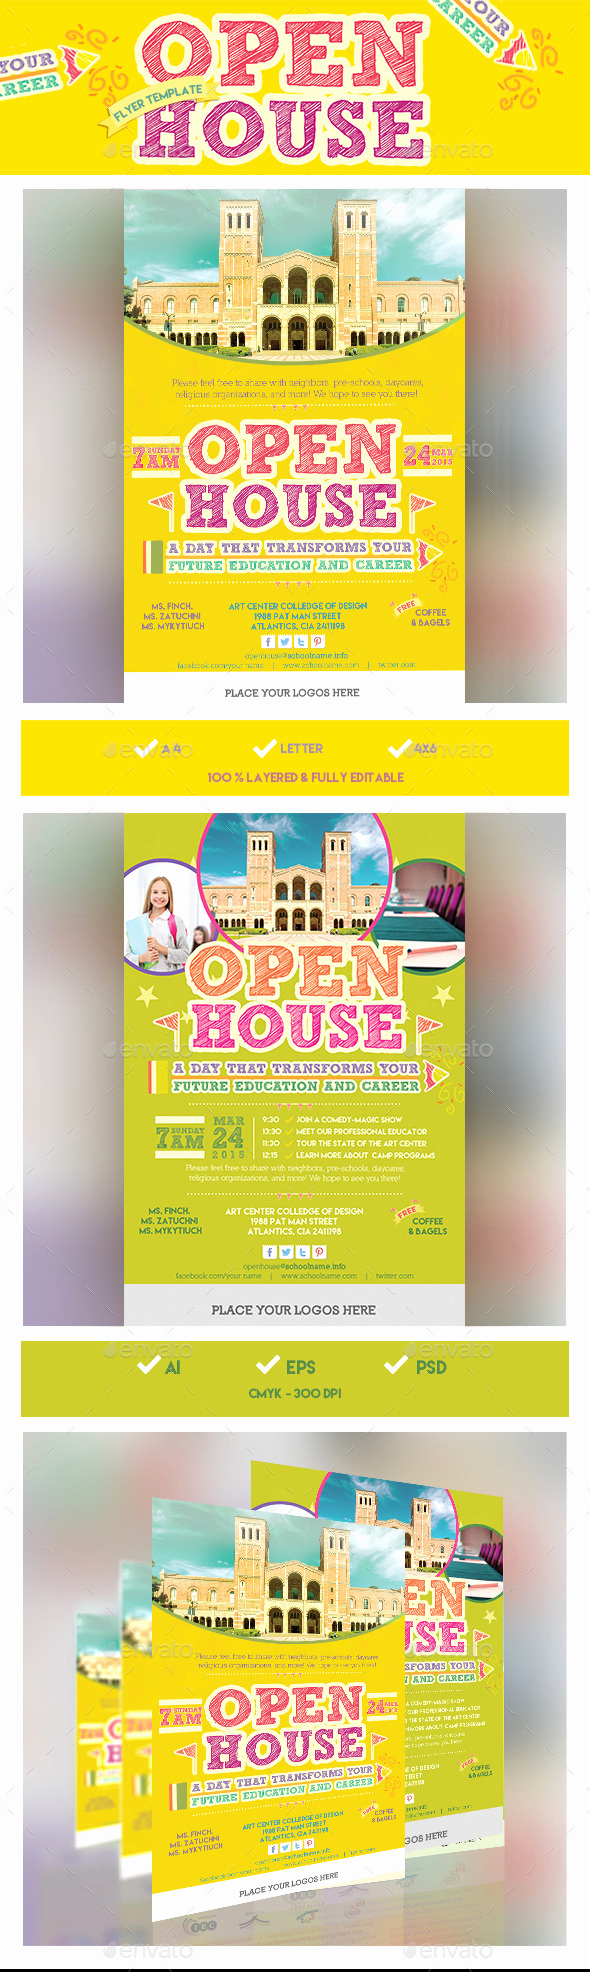 Open House Invitation Template Fresh School Open House Flyer Template Design Conference